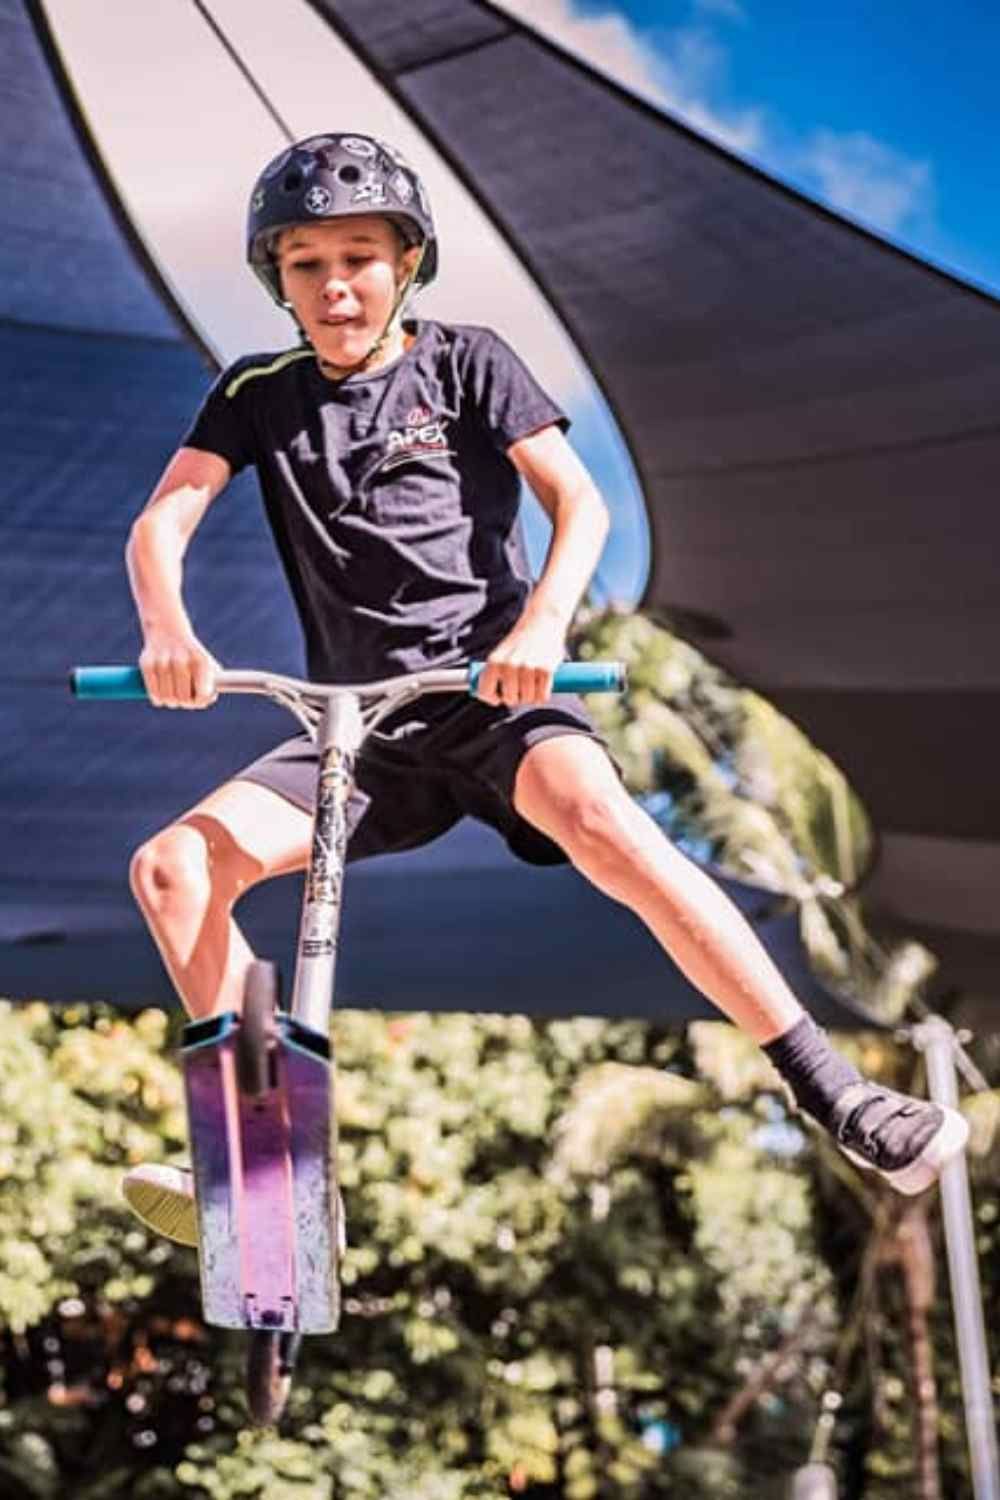 Teen at Redlynch Skate Park